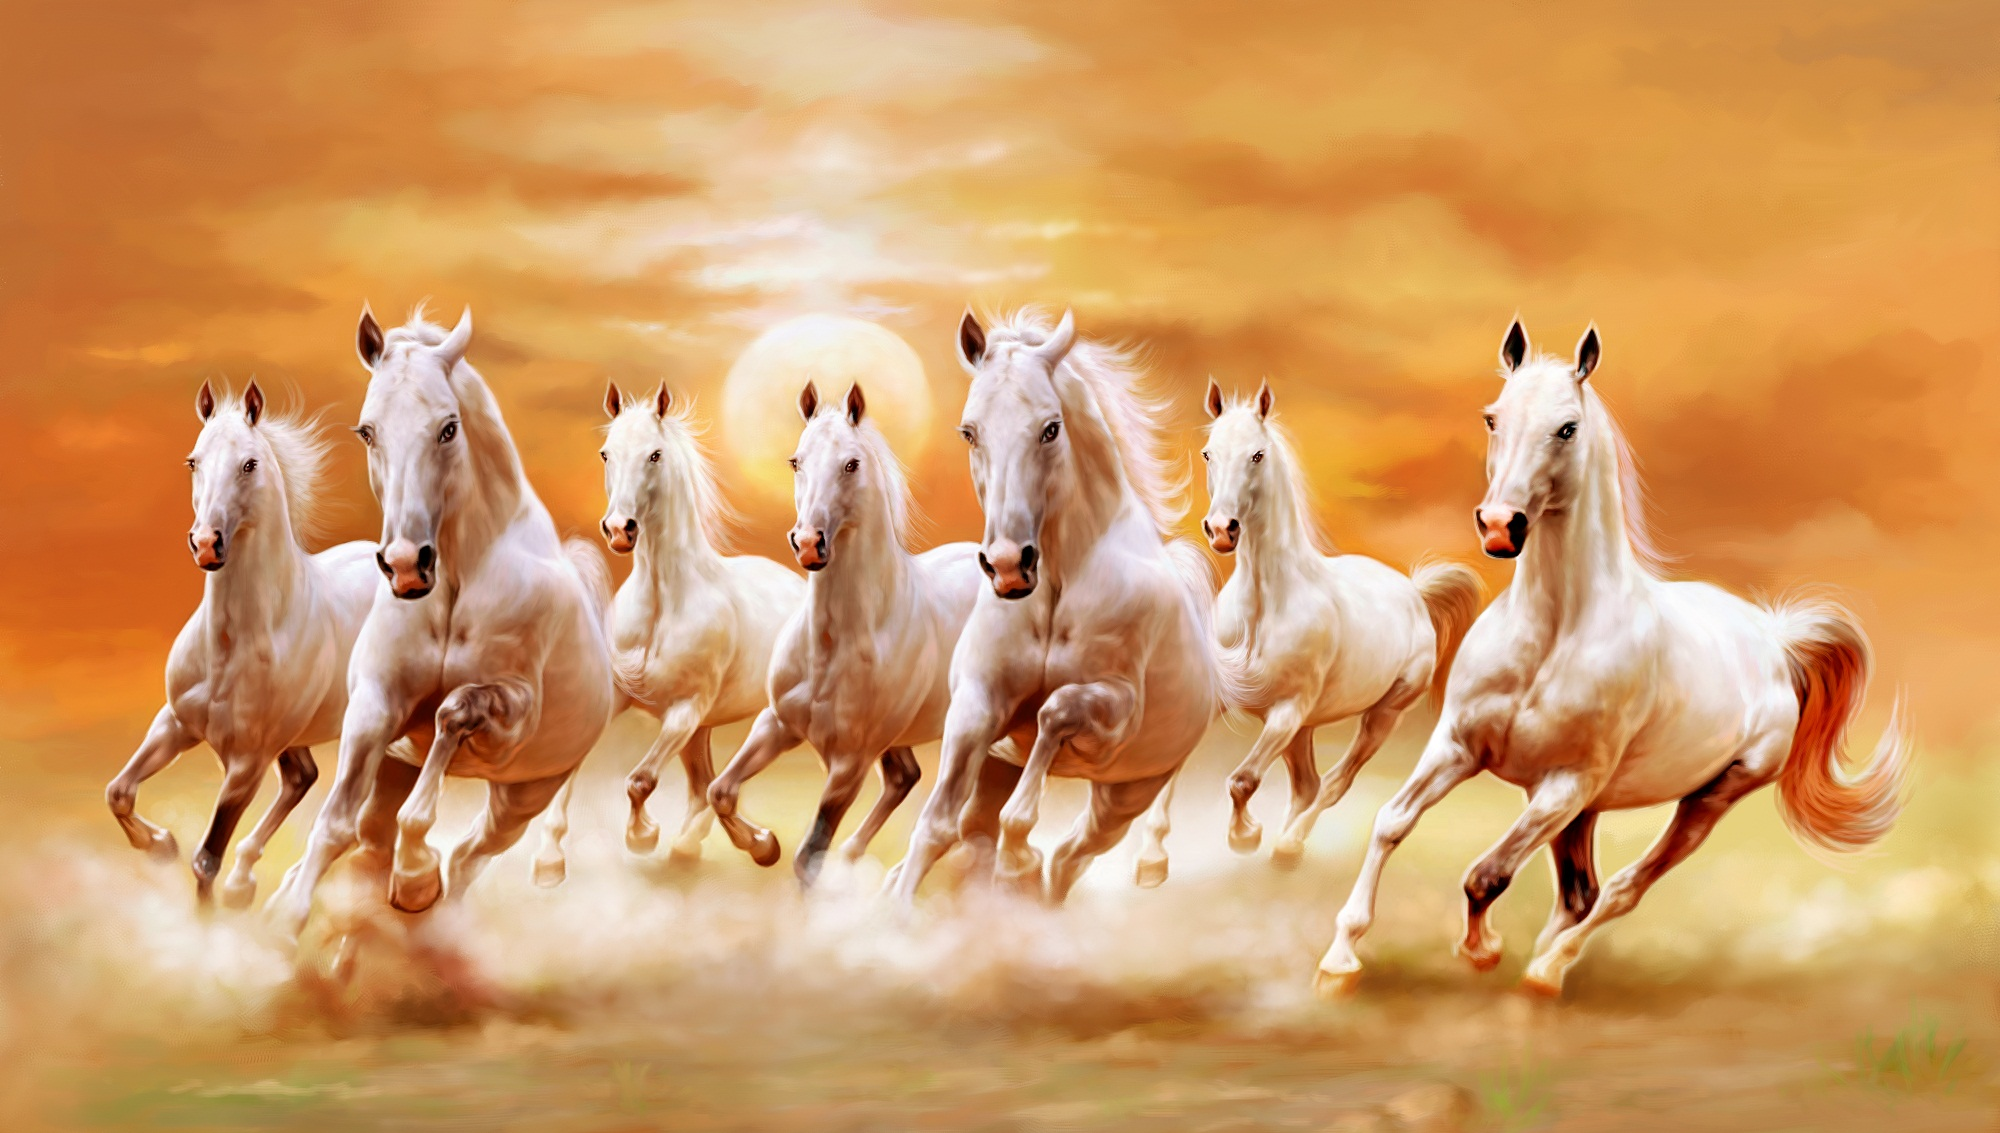 Horse Painting Wallpapers, Pictures, Images